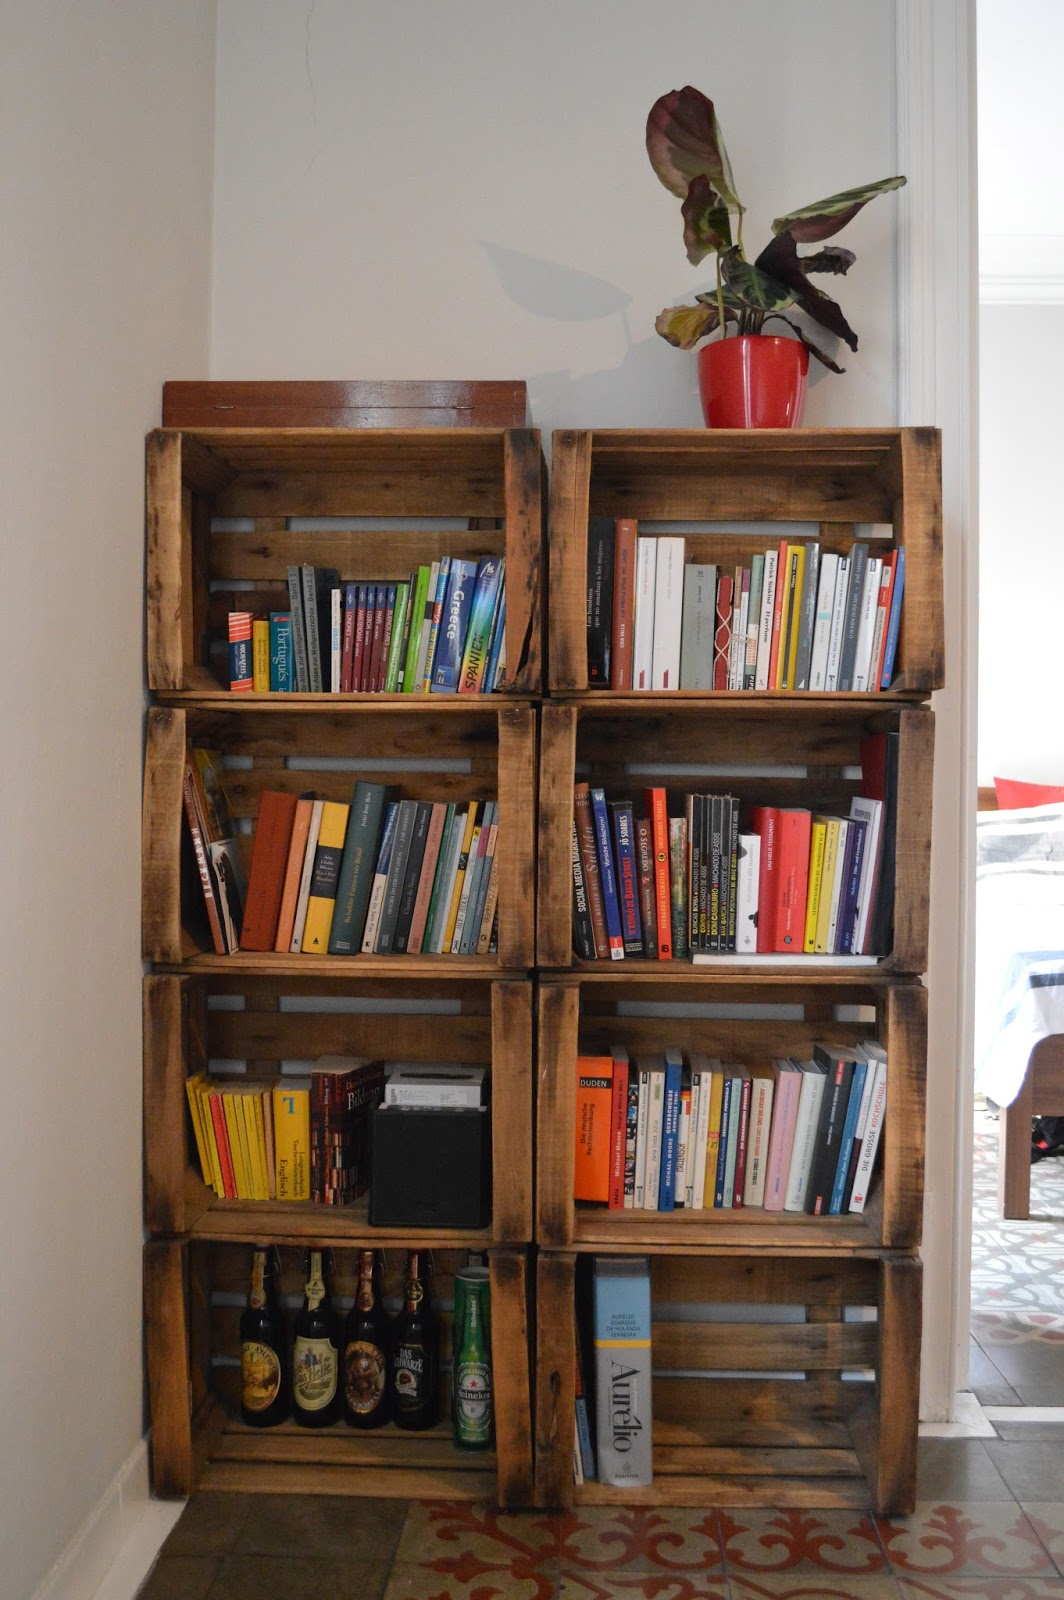 Recycled old vintage retro vegetable crates made into bookshelves in Airbnb apartment Barcelona